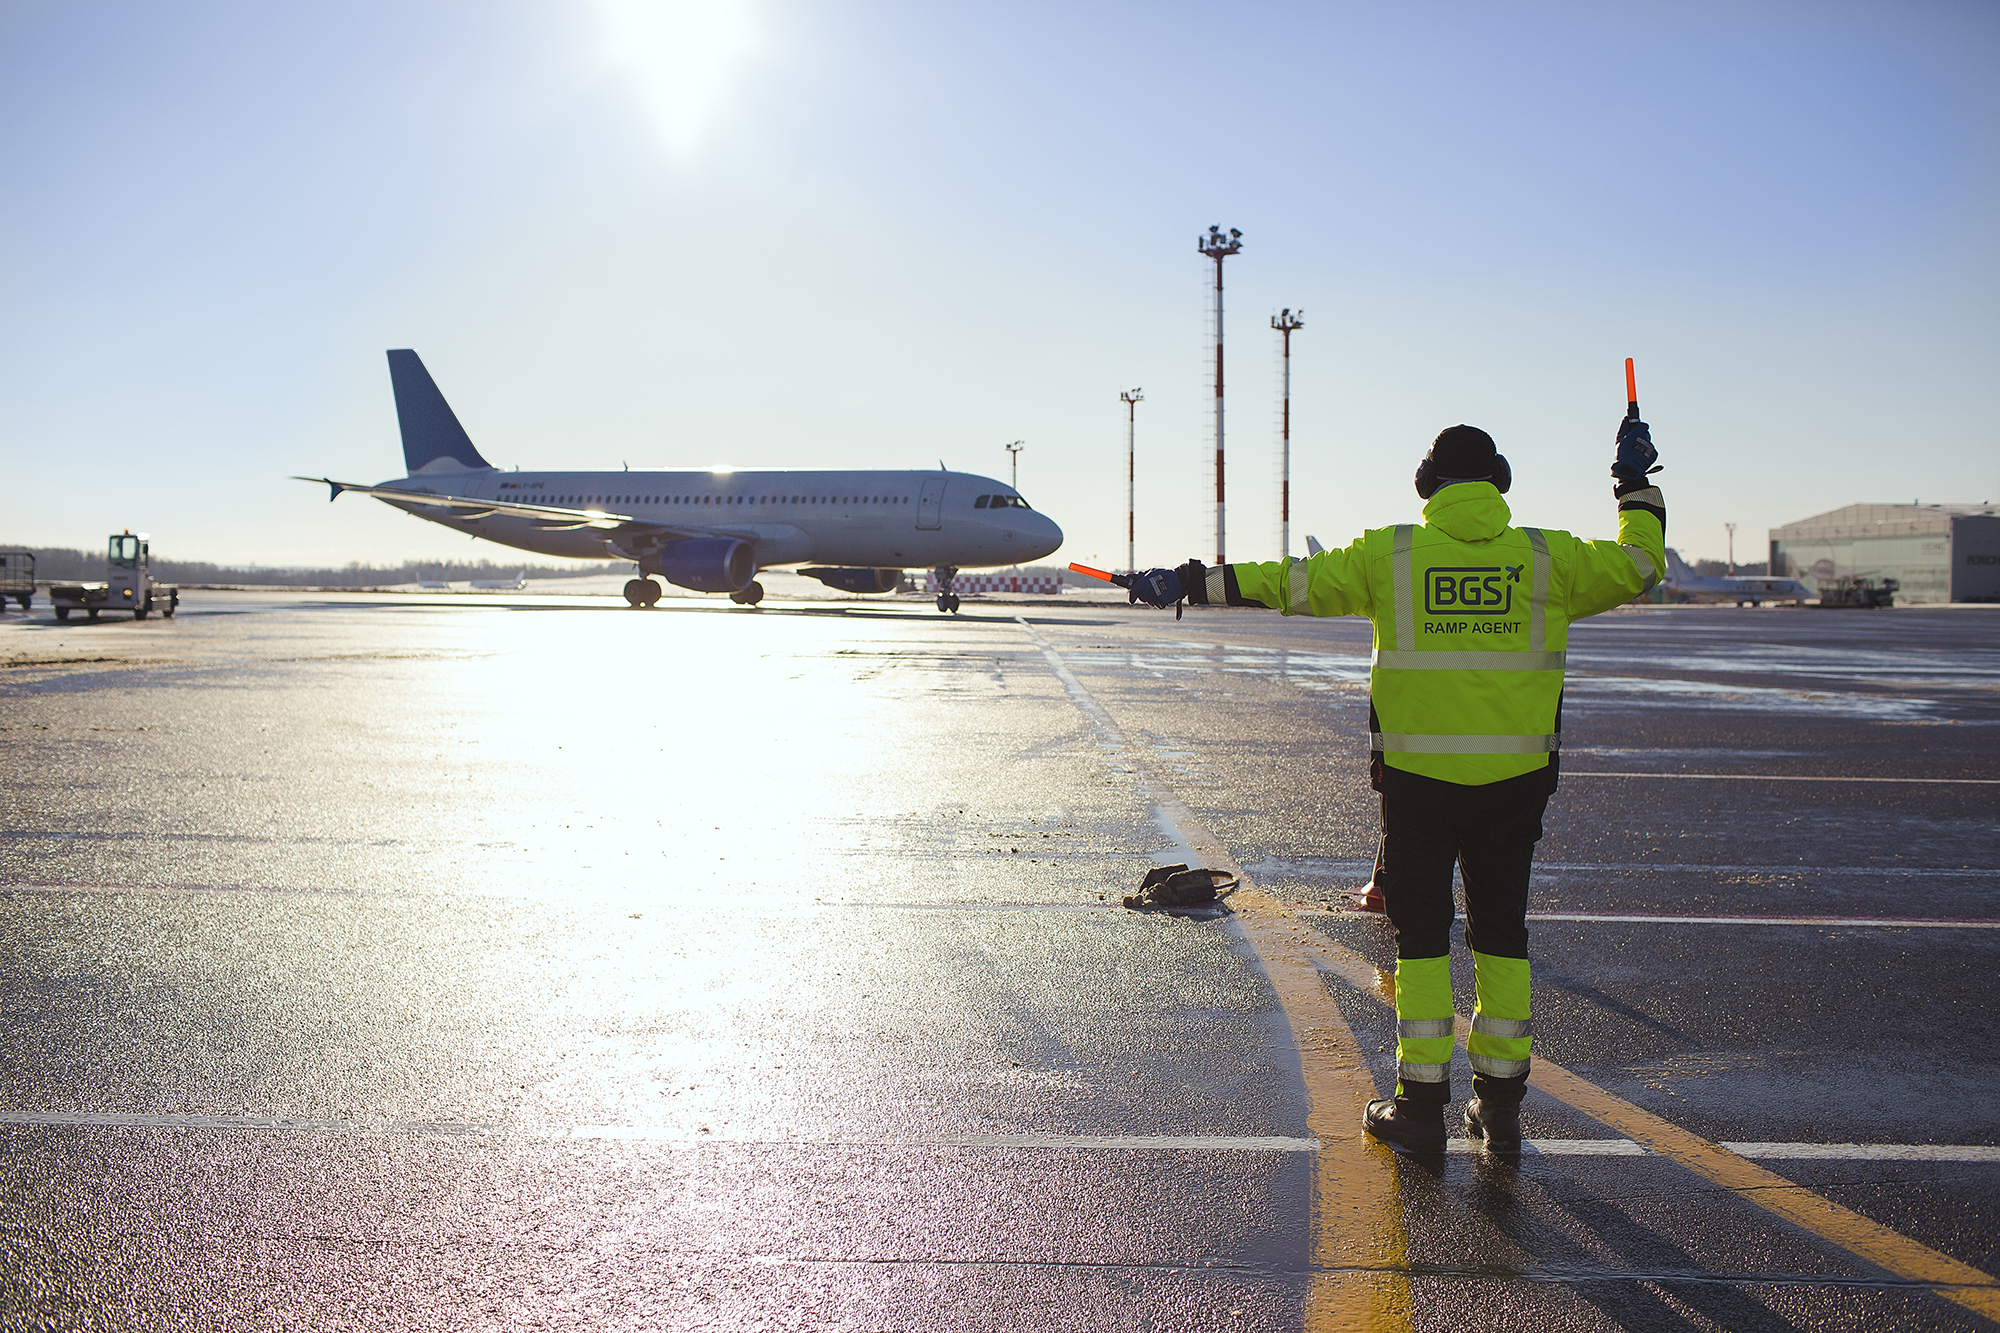 Ryanair Sun chose Baltic Ground Services to service charter passengers at the Chopin airport in Warsaw